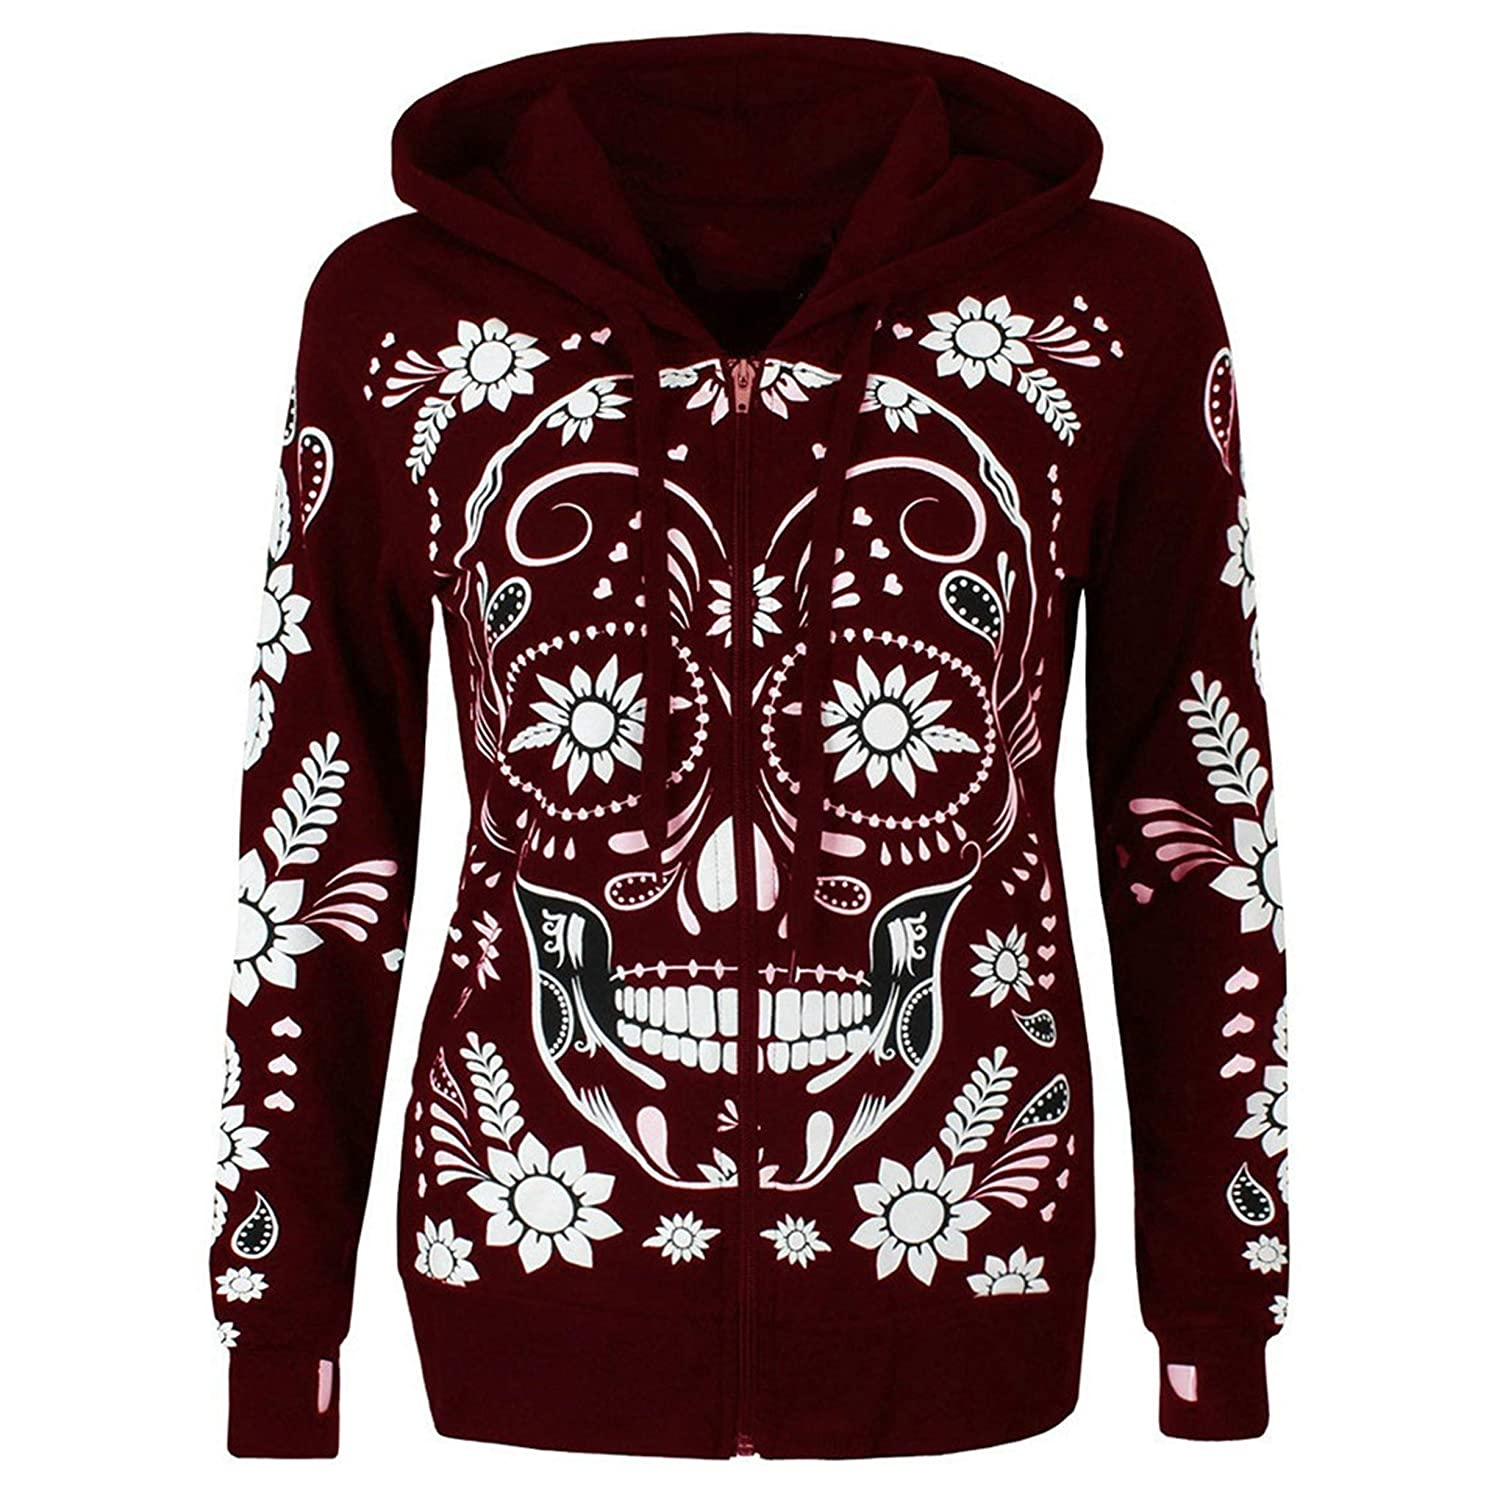 Londony♥‿♥ Clearance,Women's Comfy Skull Print Zipper Jacket Long Sleeve Cowl Neck Pullover Hooded Sweatshirts Top Londony007